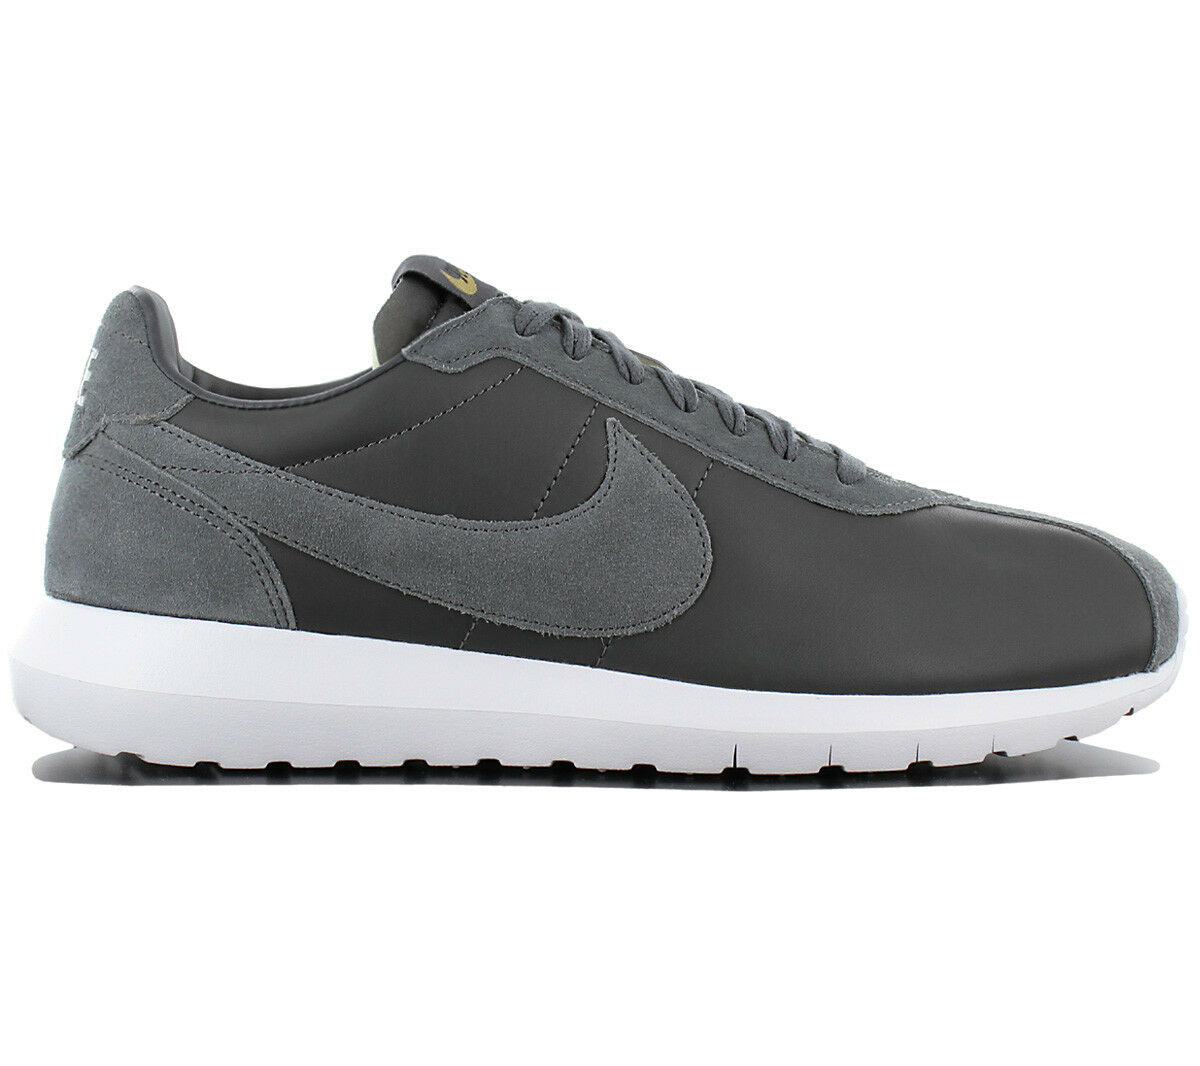 Nike Roshe LD-1000 Premium QS Quickstrike Release Men's Sneakers Shoes NEW Wild casual shoes